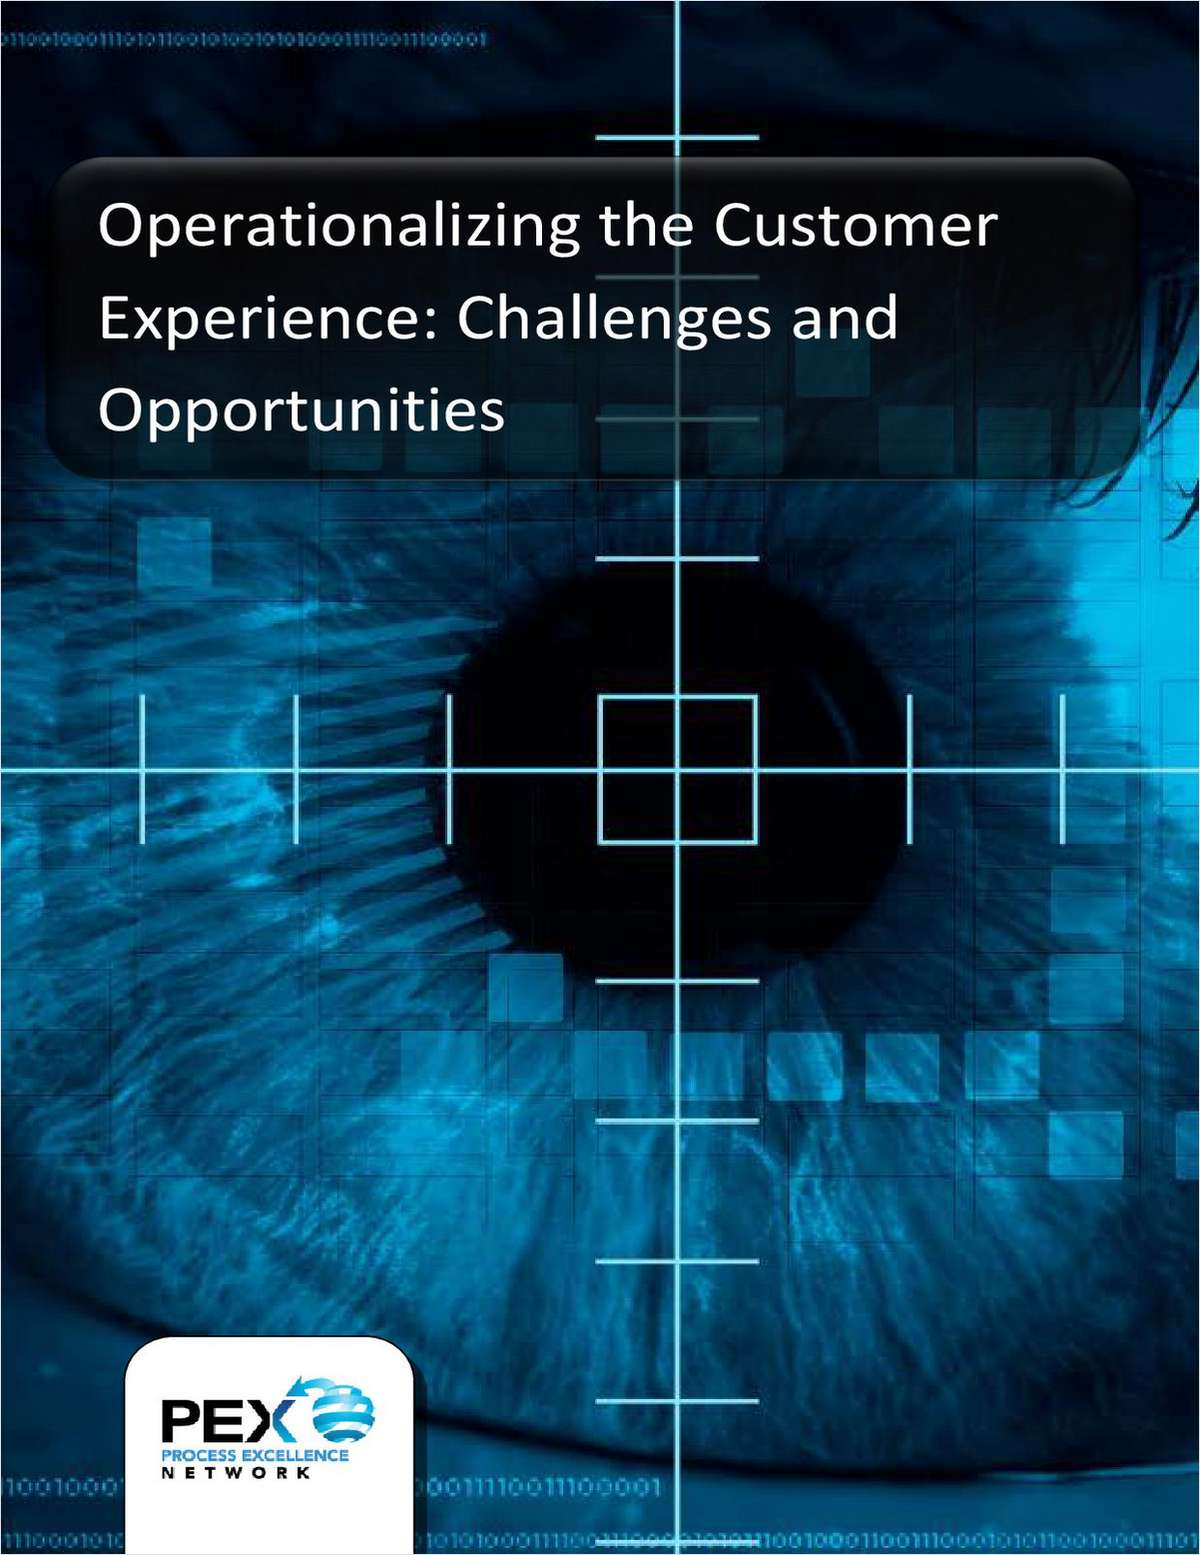 Operationalizing the Customer Experience - Survey Report